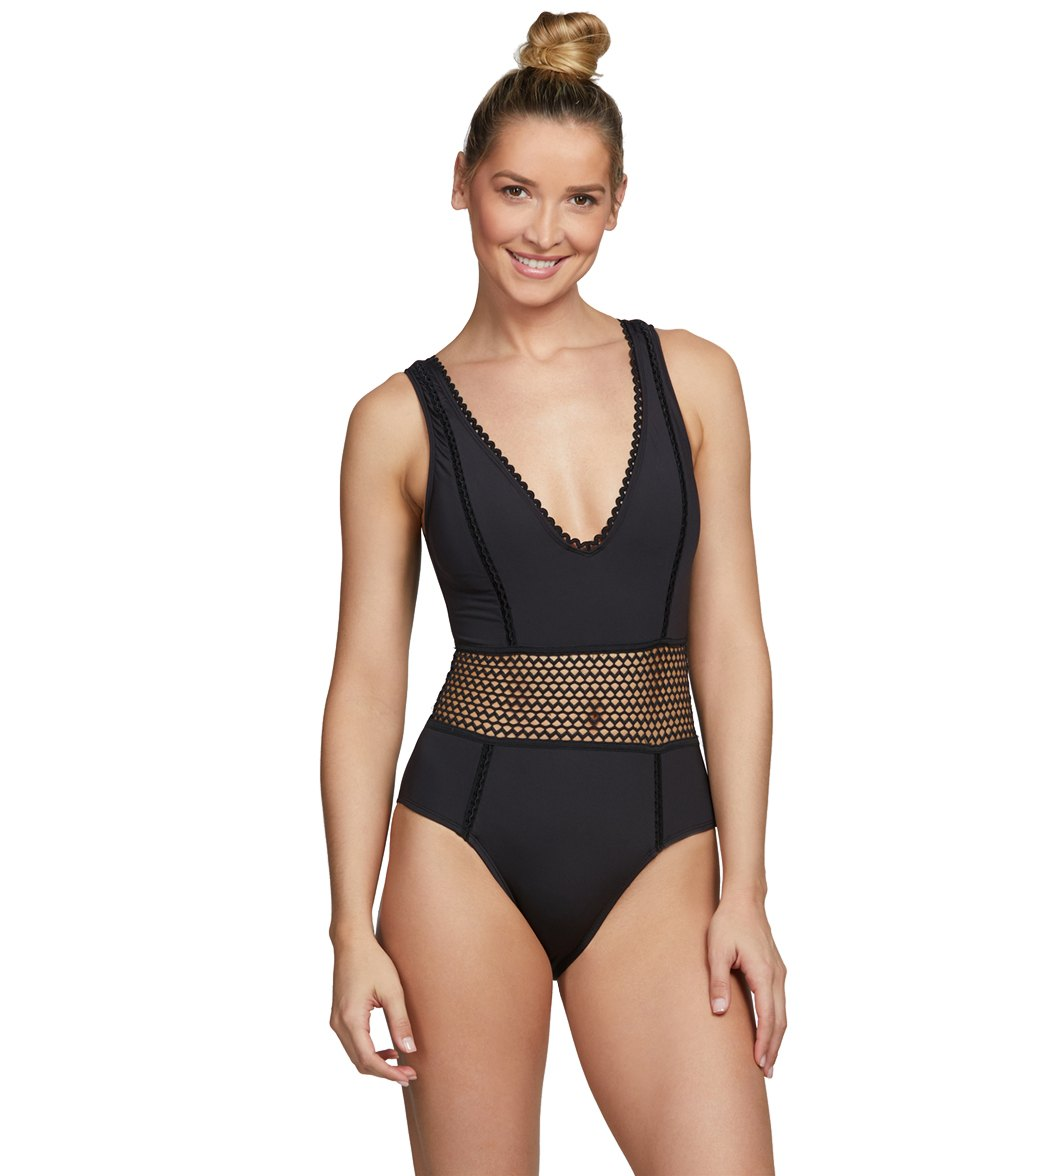 39df9c5c76 Kenneth Cole Find Tranquility V-Neck Plunge Solid One Piece Swimsuit at  SwimOutlet.com - Free Shipping